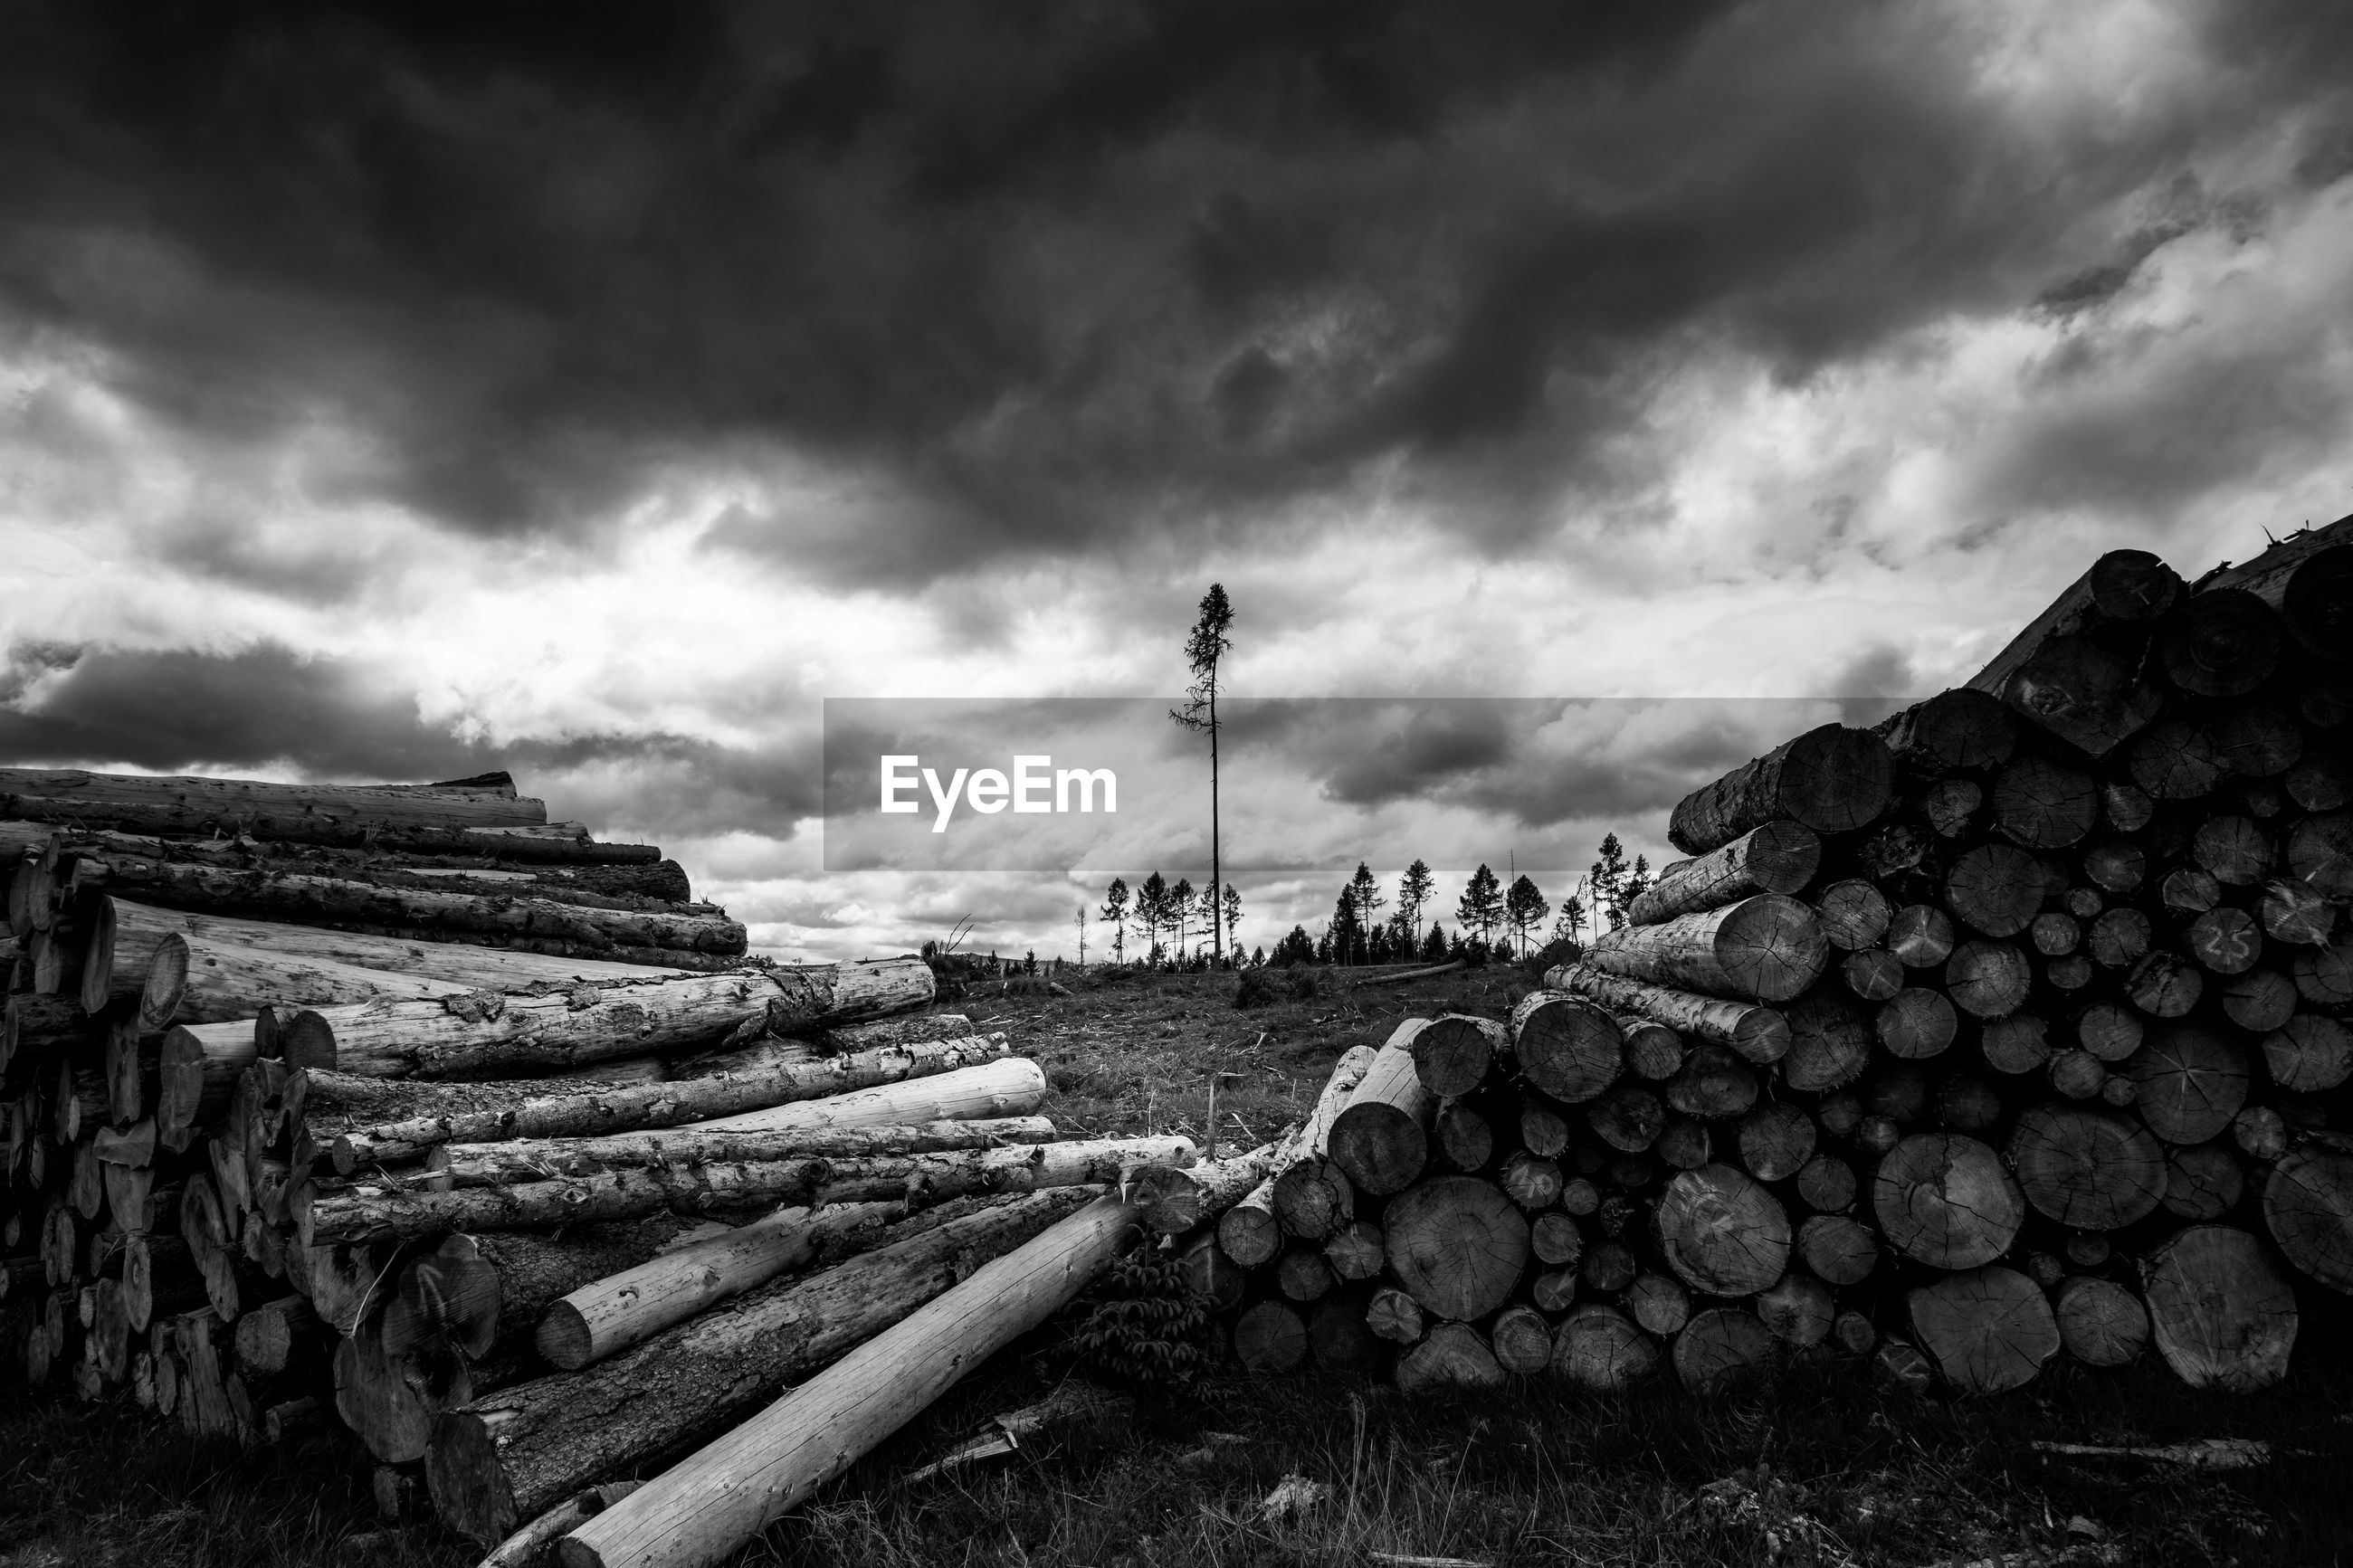 cloud, black and white, sky, monochrome, monochrome photography, nature, logging, log, firewood, timber, lumber industry, rock, black, architecture, deforestation, darkness, wood, built structure, white, land, no people, environment, large group of objects, outdoors, power generation, ruins, tree, rural area, heap, environmental issues, industry, landscape, day, abundance, building exterior, forest, fossil fuel, storm, environmental damage, stone wall, building